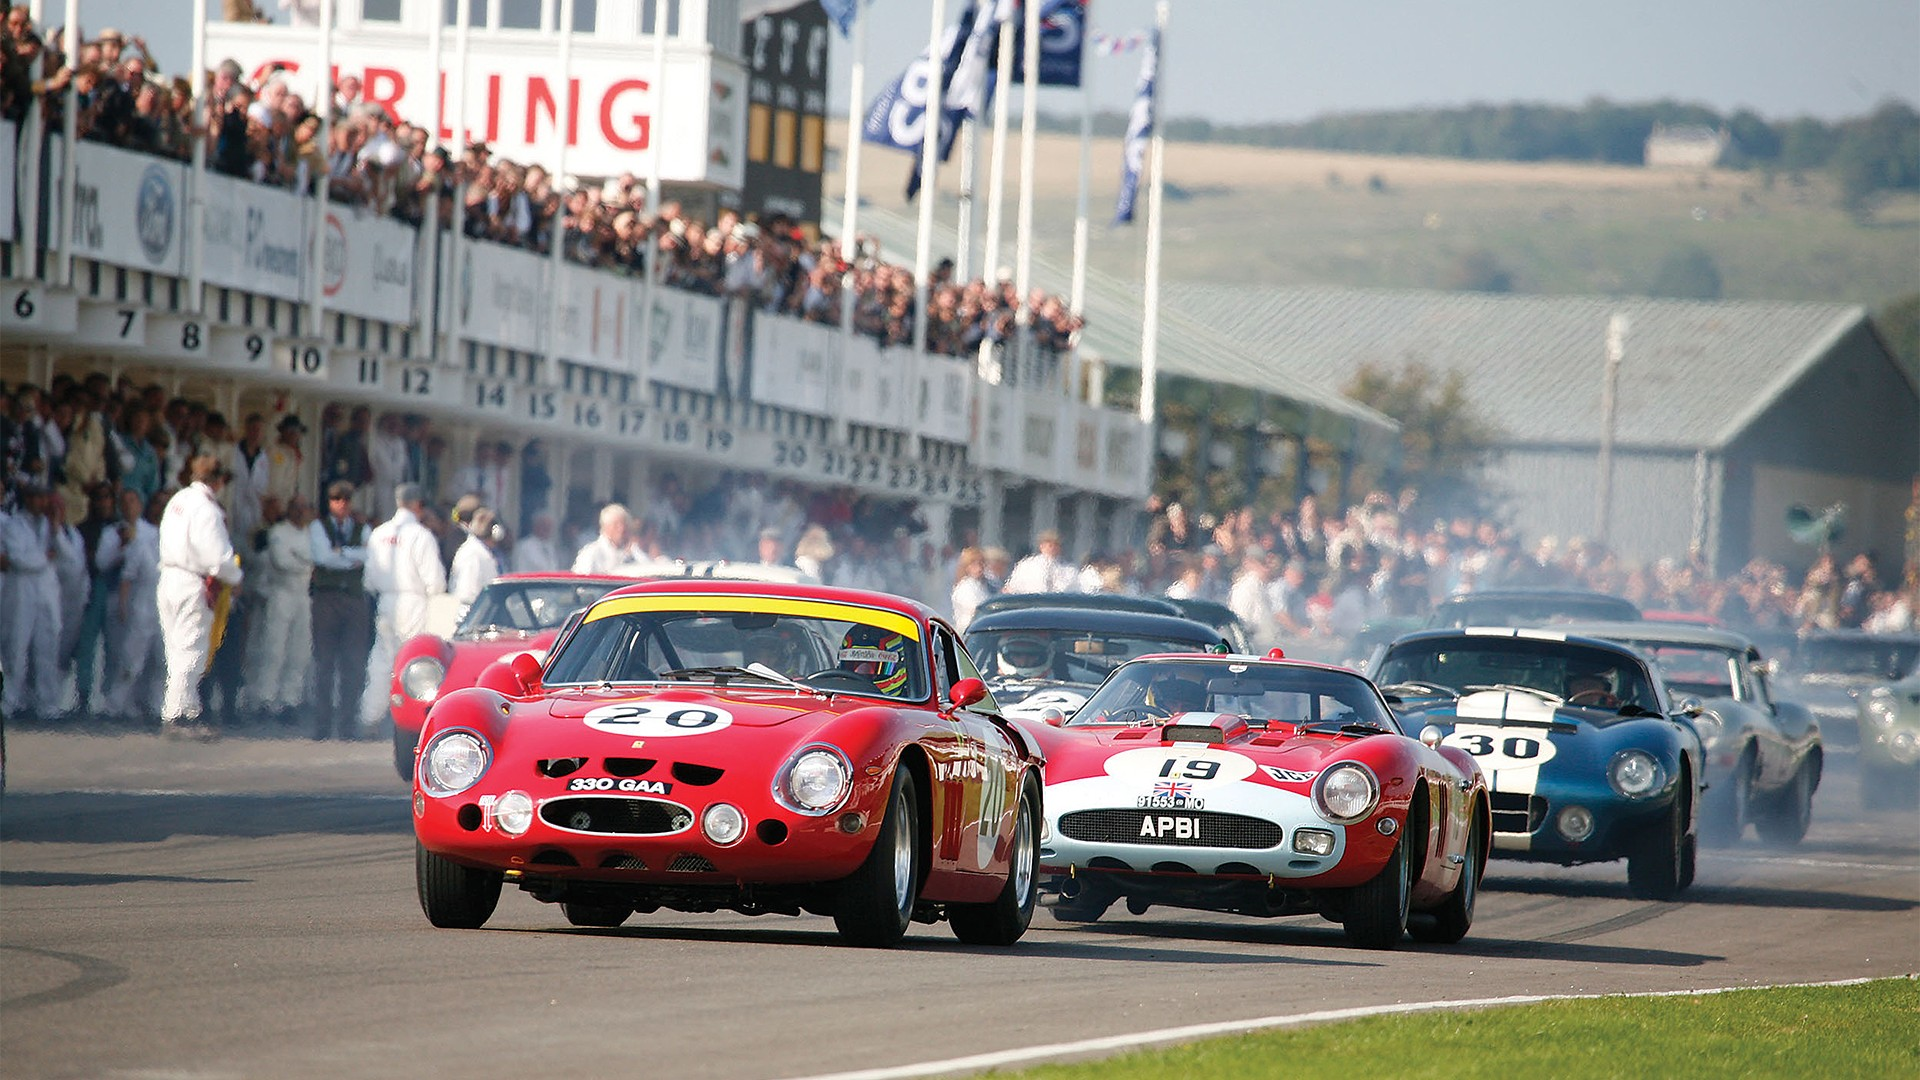 The Goodwood Revival Is An All Encomping Spectacle Of Thrilling On Track Action Stunning Aerial Displays Music Food And Fashion